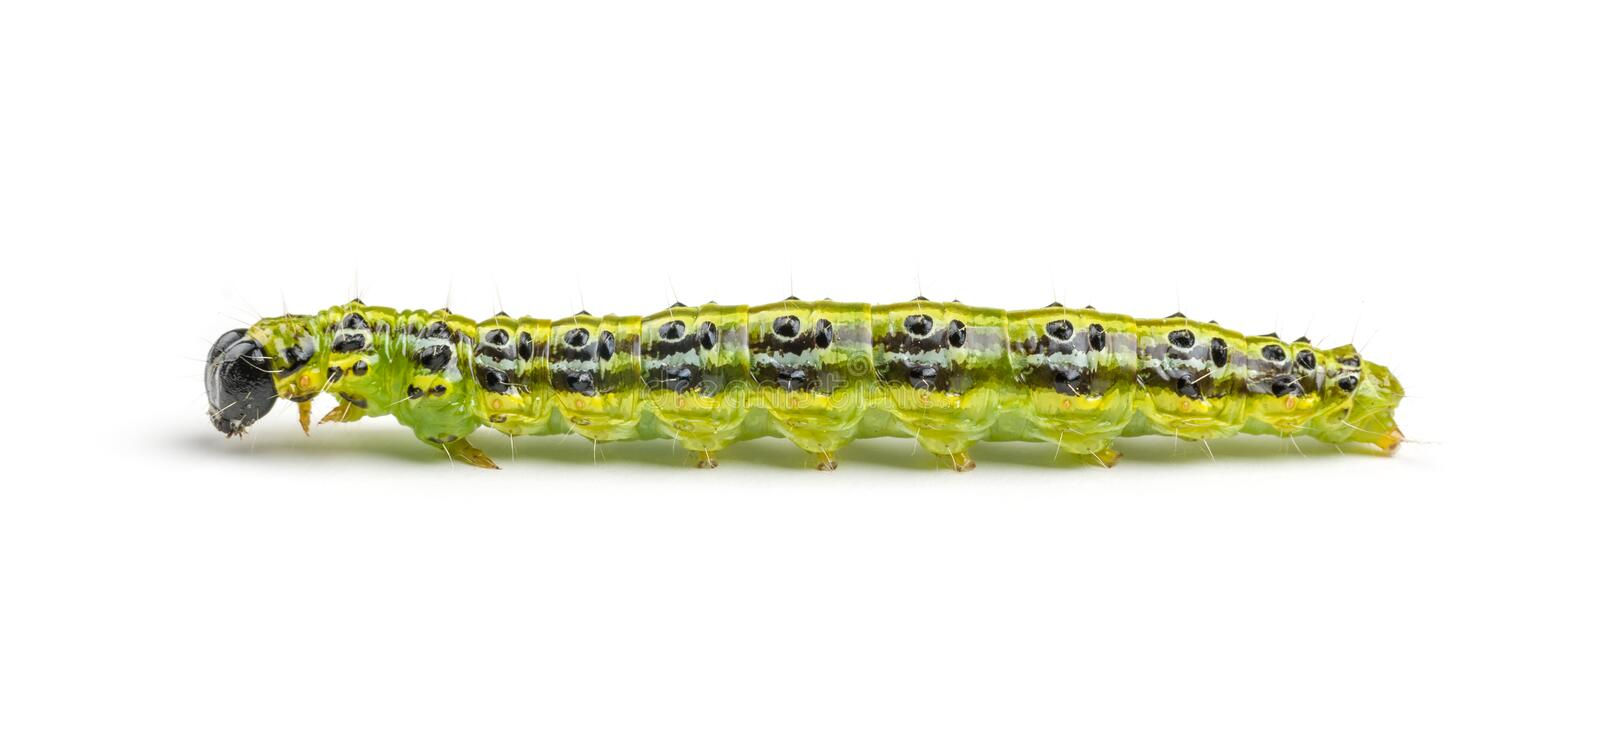 Caterpillar of the box tree moth. (Cydalima perspectalis stock image